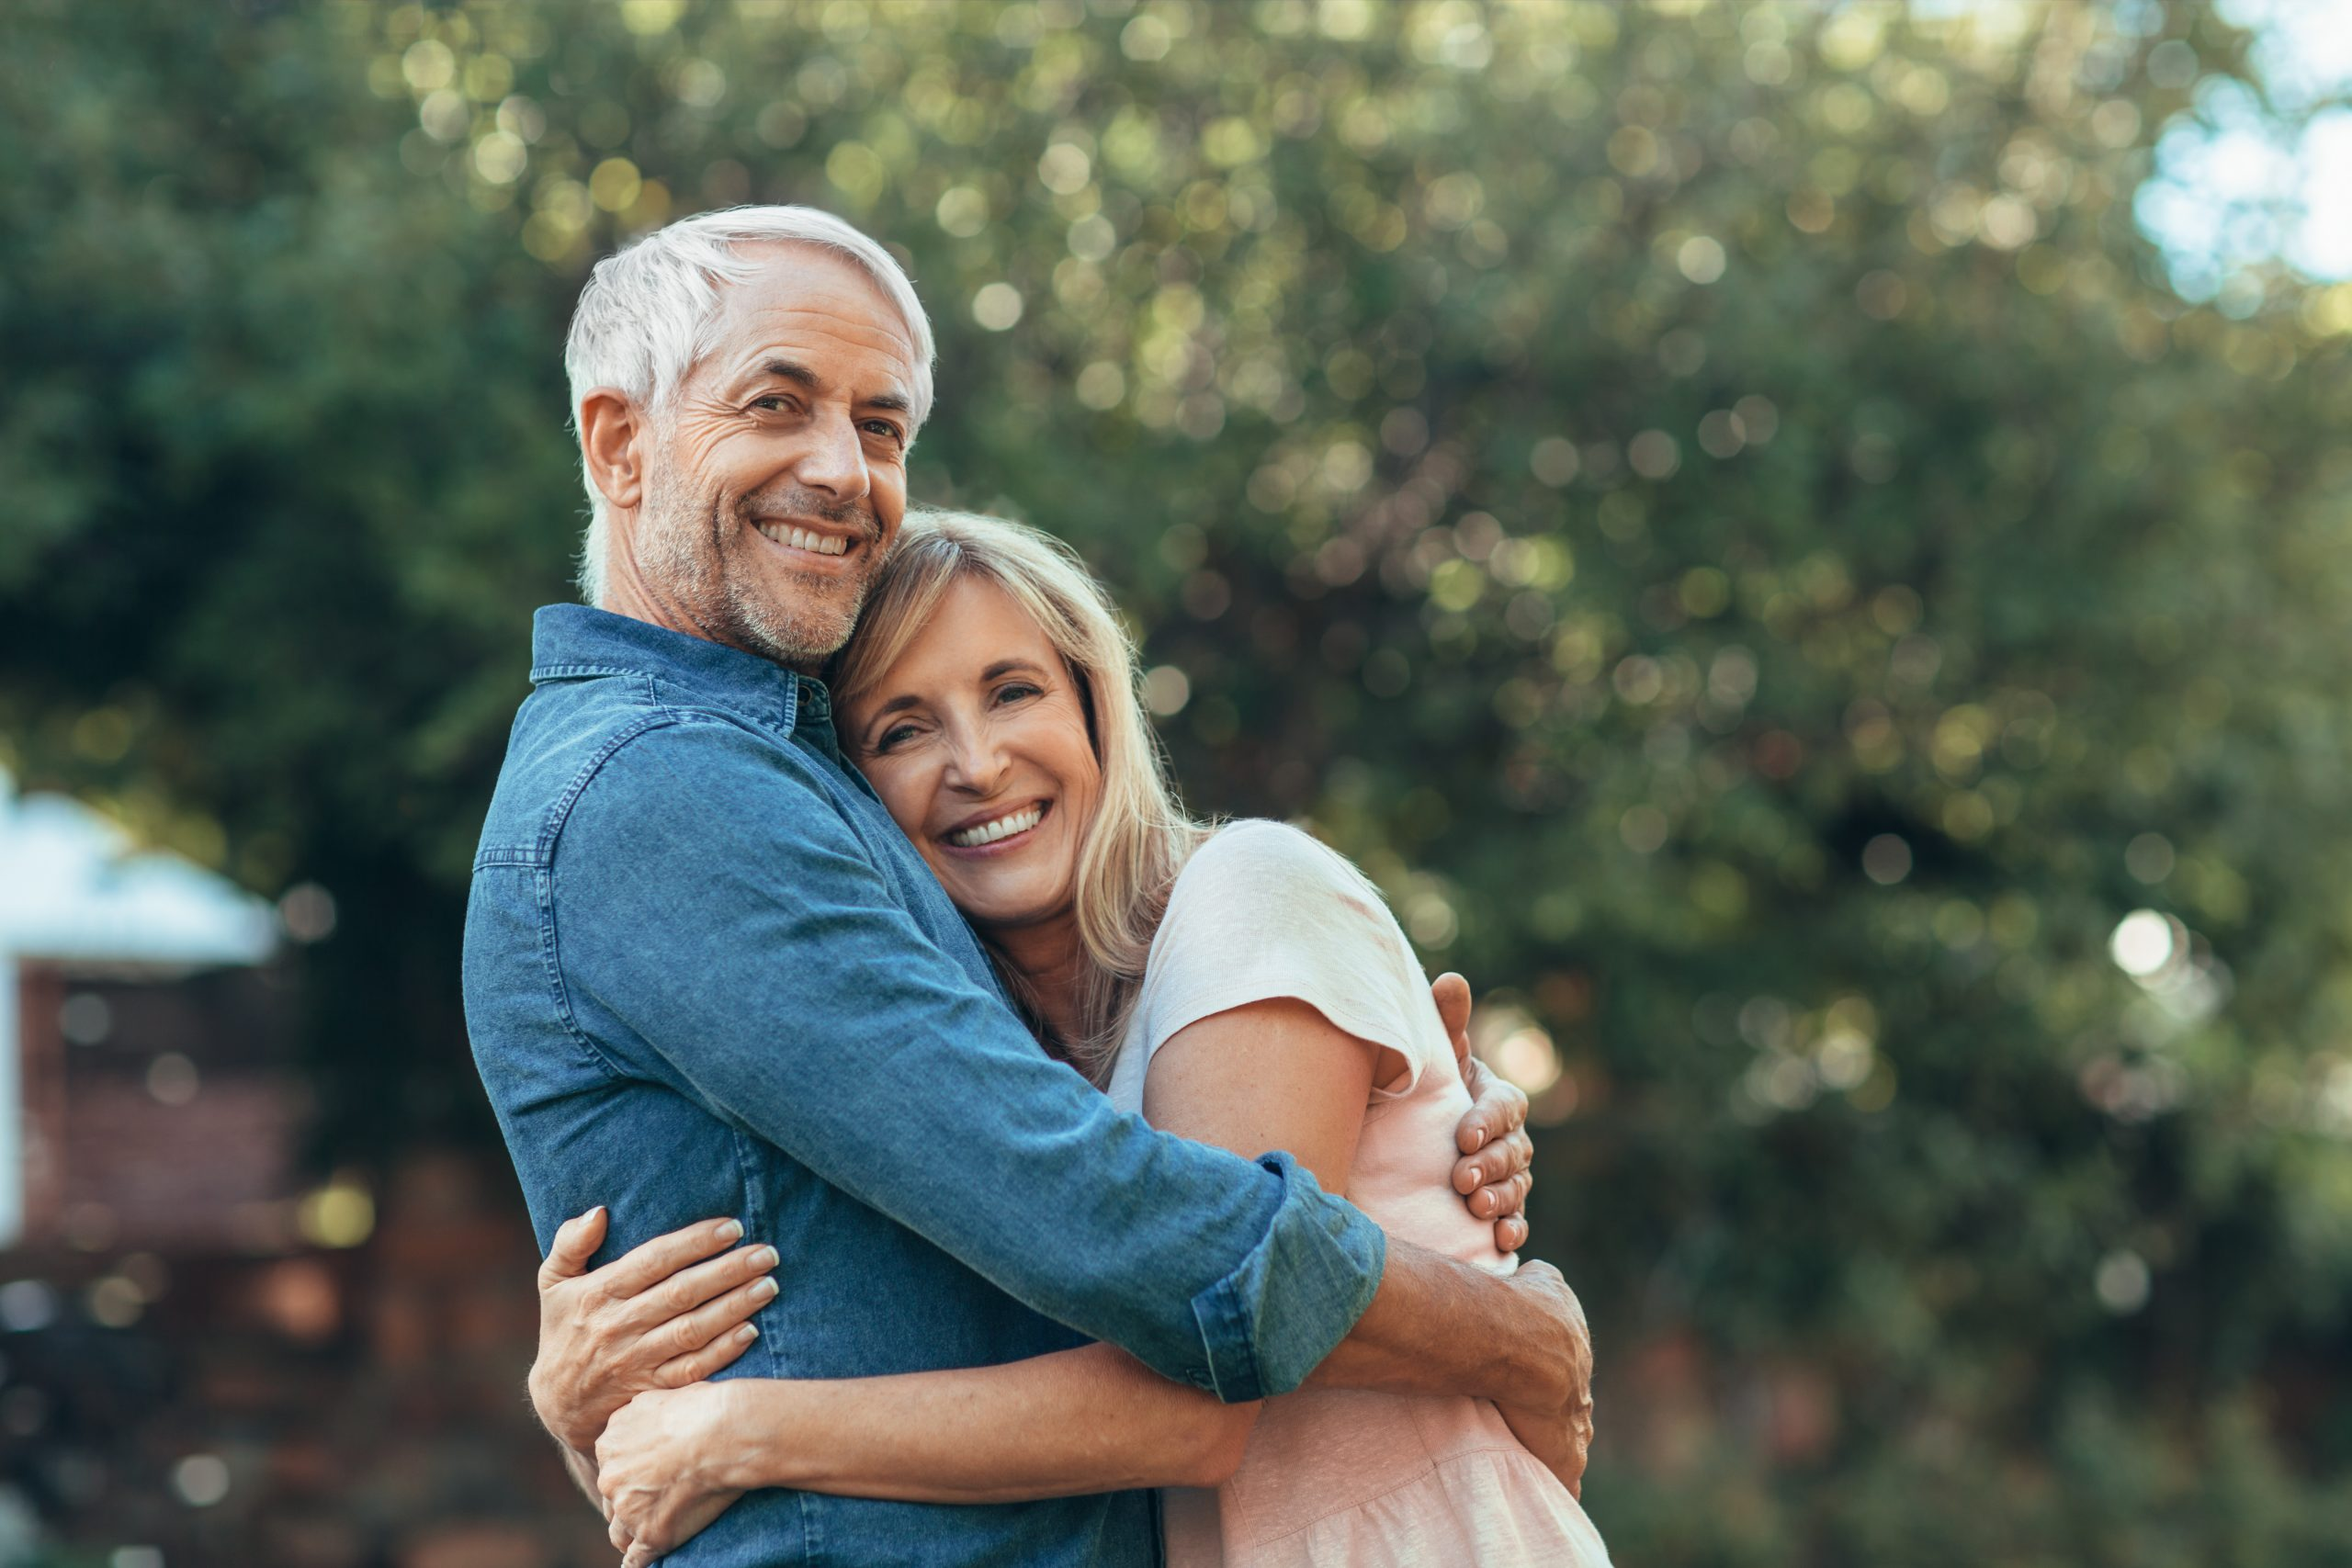 Portrait of a smiling mature couple standing affectionately in each other's arms in their backyard on a sunny day